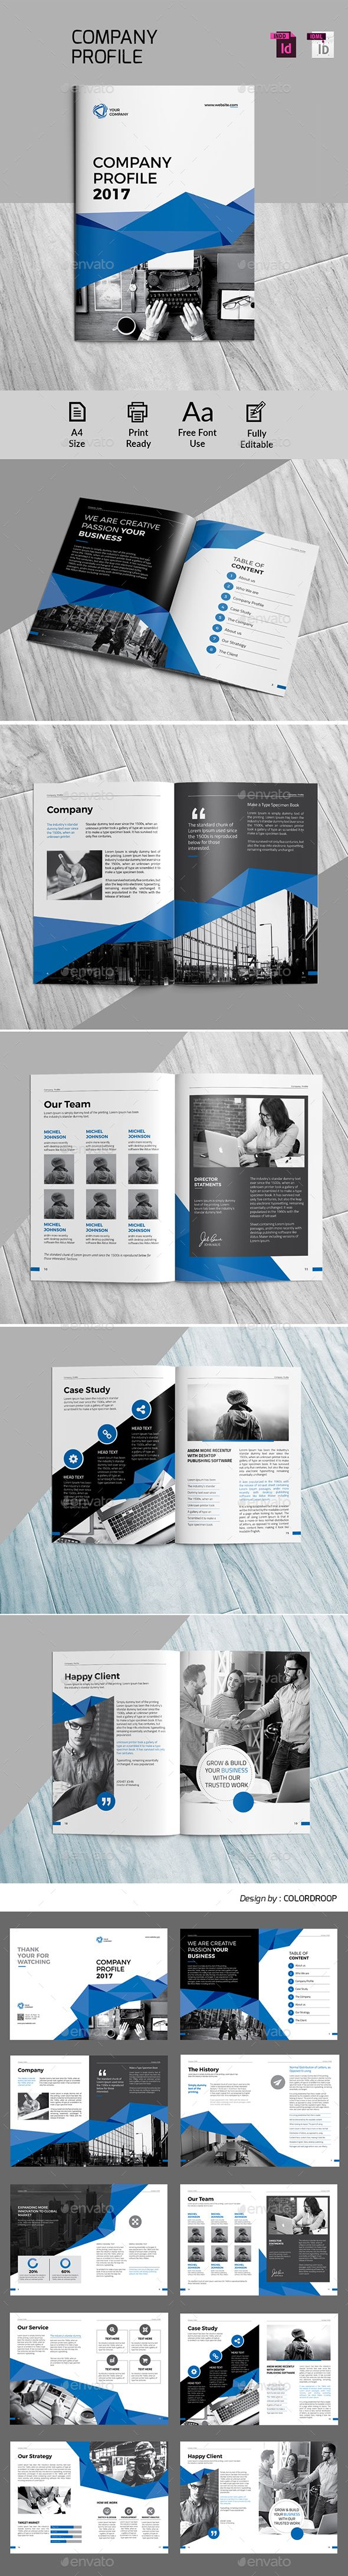 Company Profile — InDesign INDD #corporate #indesign • Download ...